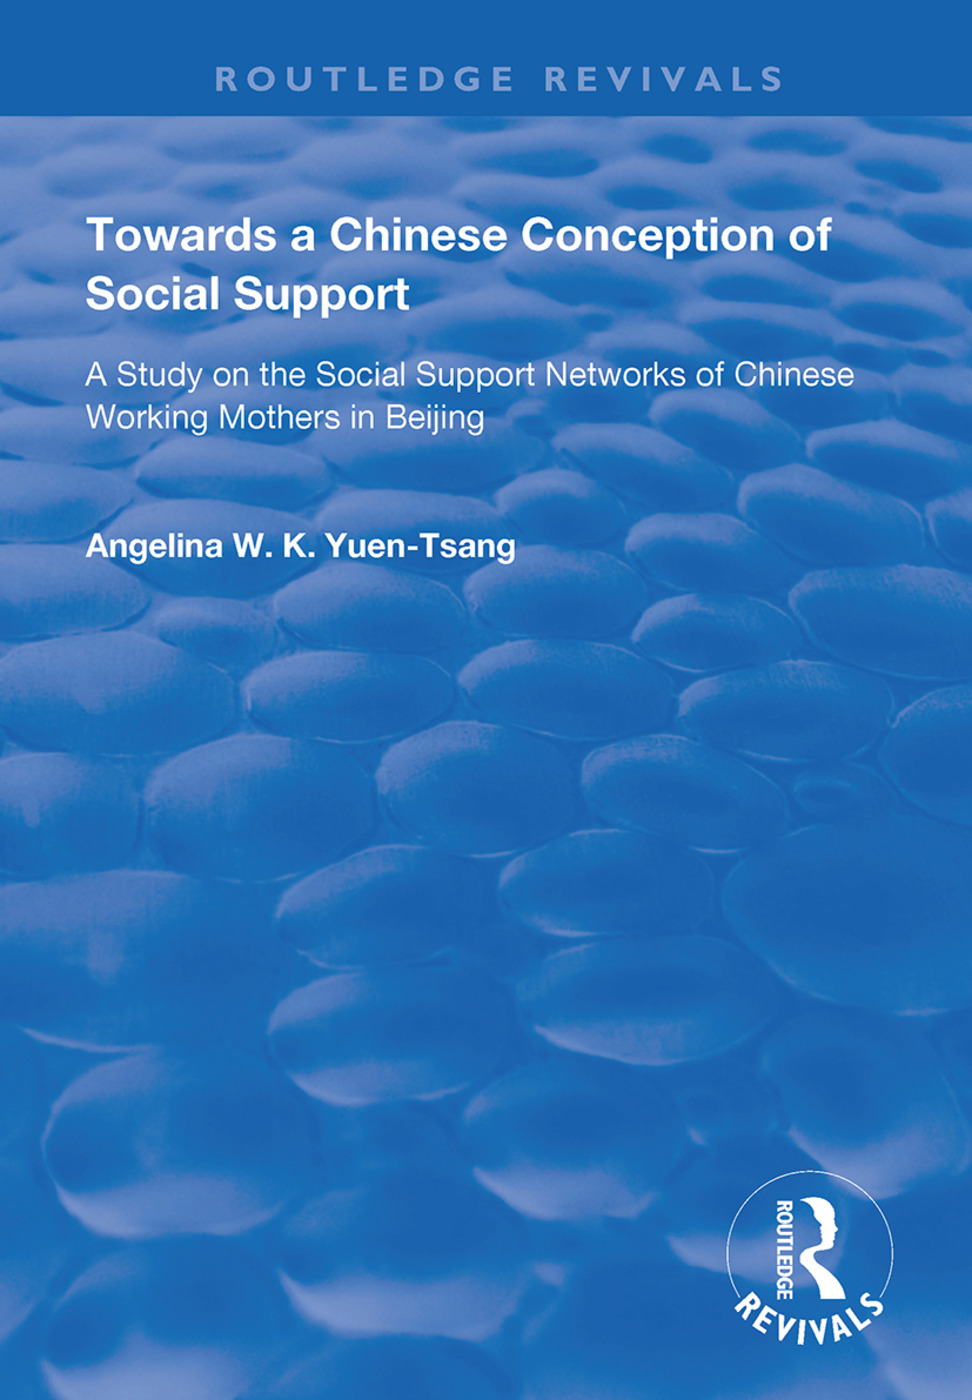 Towards a Chinese Conception of Social Support